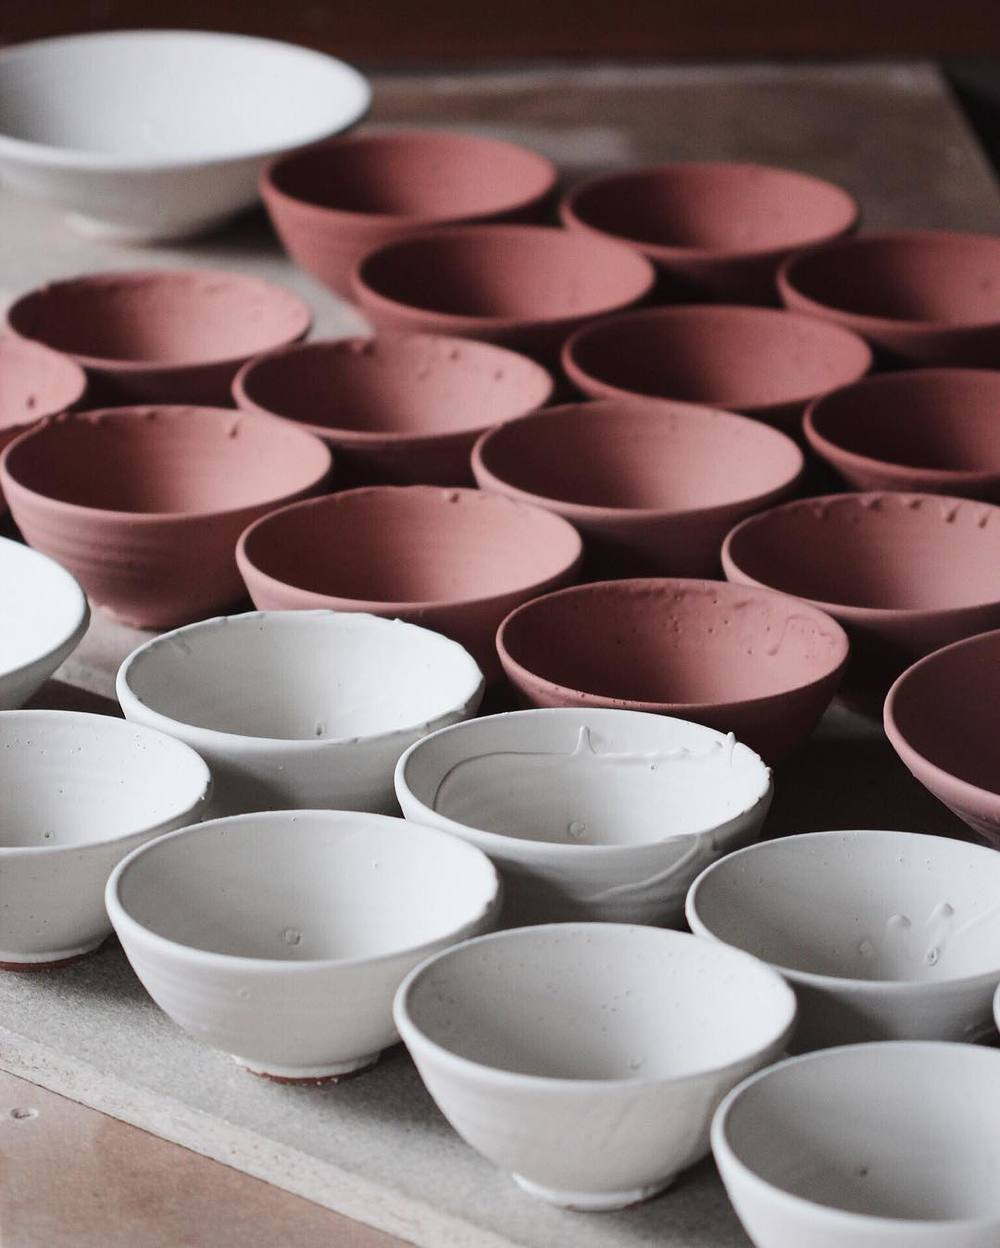 A_portion_of_the_bisque_ware_posted_yesterday_glazed_up._The_white_will_fire_to_a_darker__grey-white__while_the_pinks_behind_will_turn_to_either_a_light_blue_or_dark_green._The_colour_at_this_stage_is_purely_from_the_iron_oxide__which_is_merely_just_.jpg